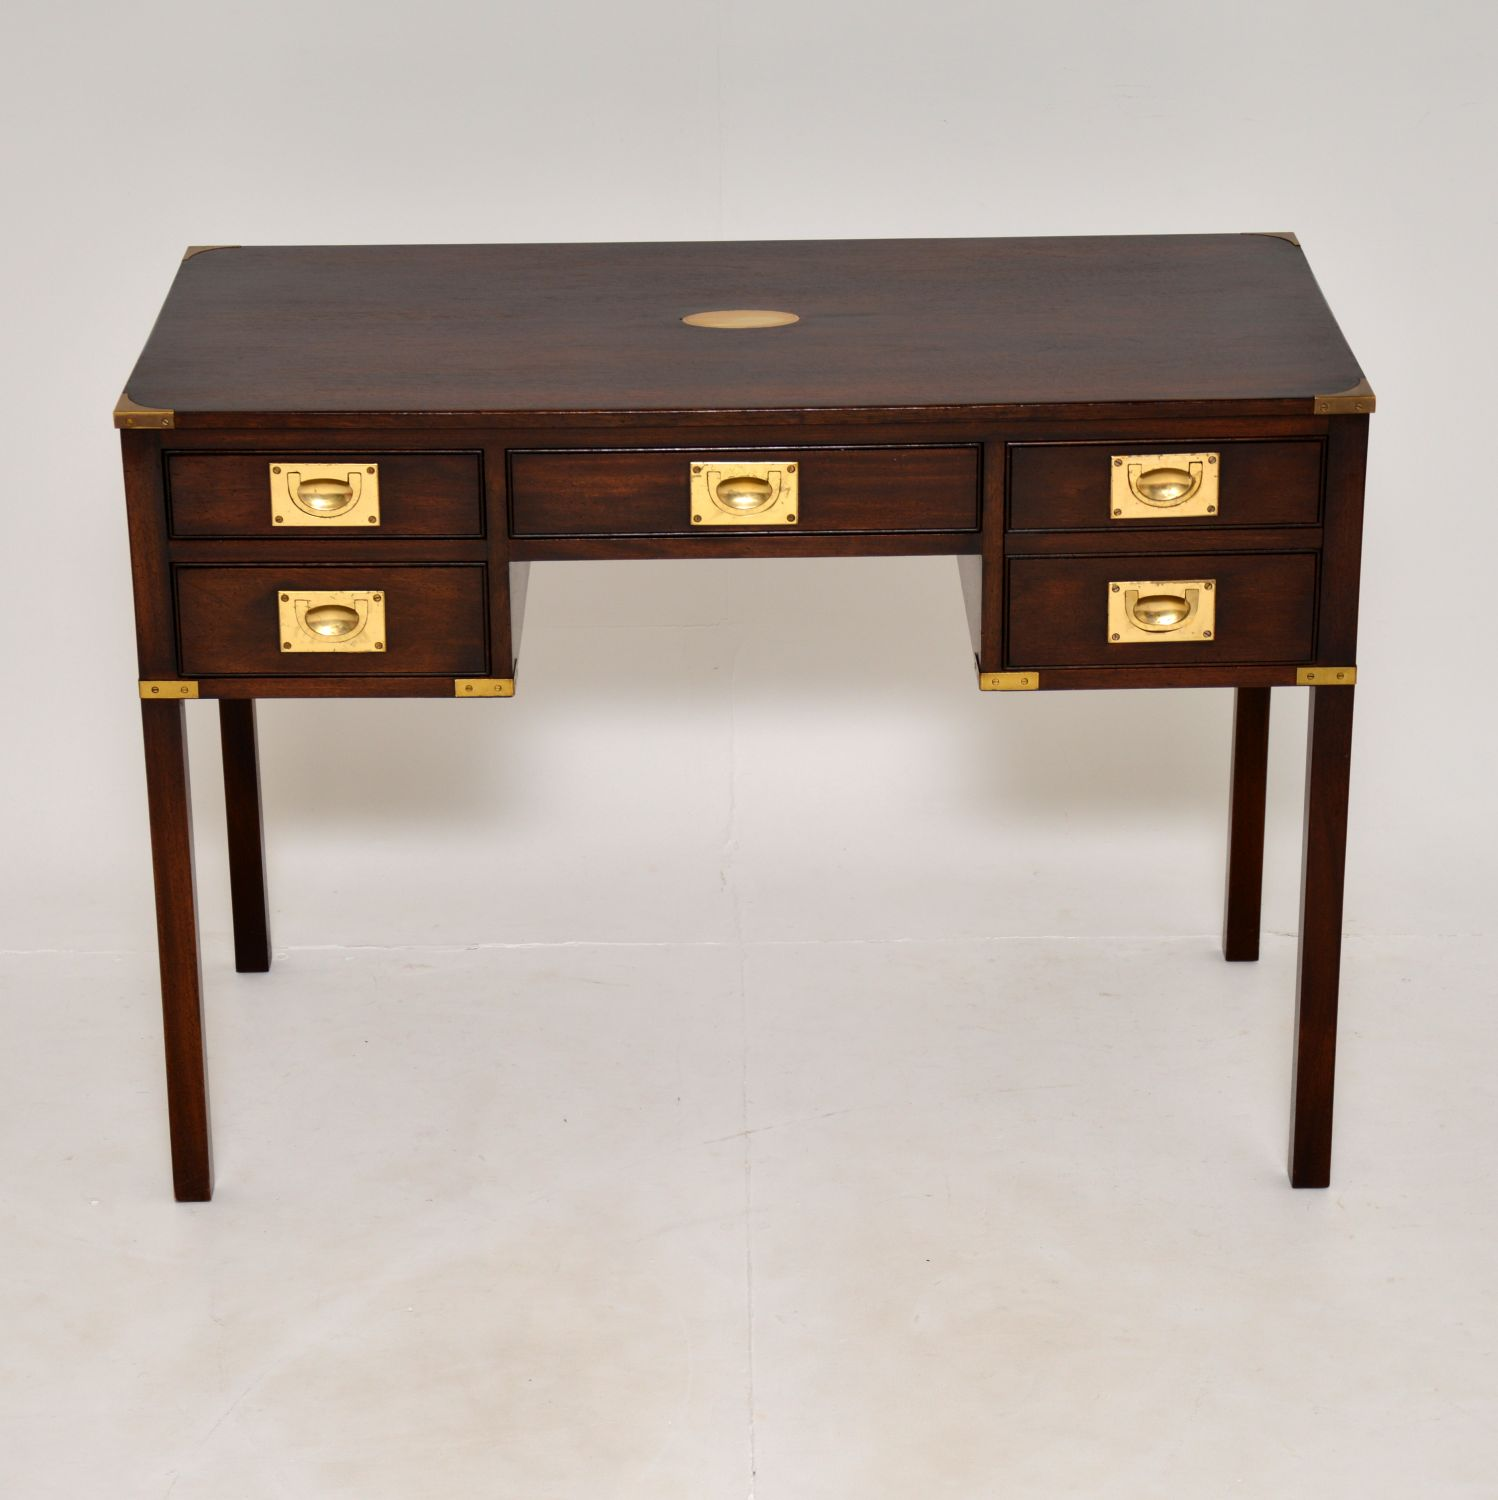 antique military campaign mahogany brass desk writing table